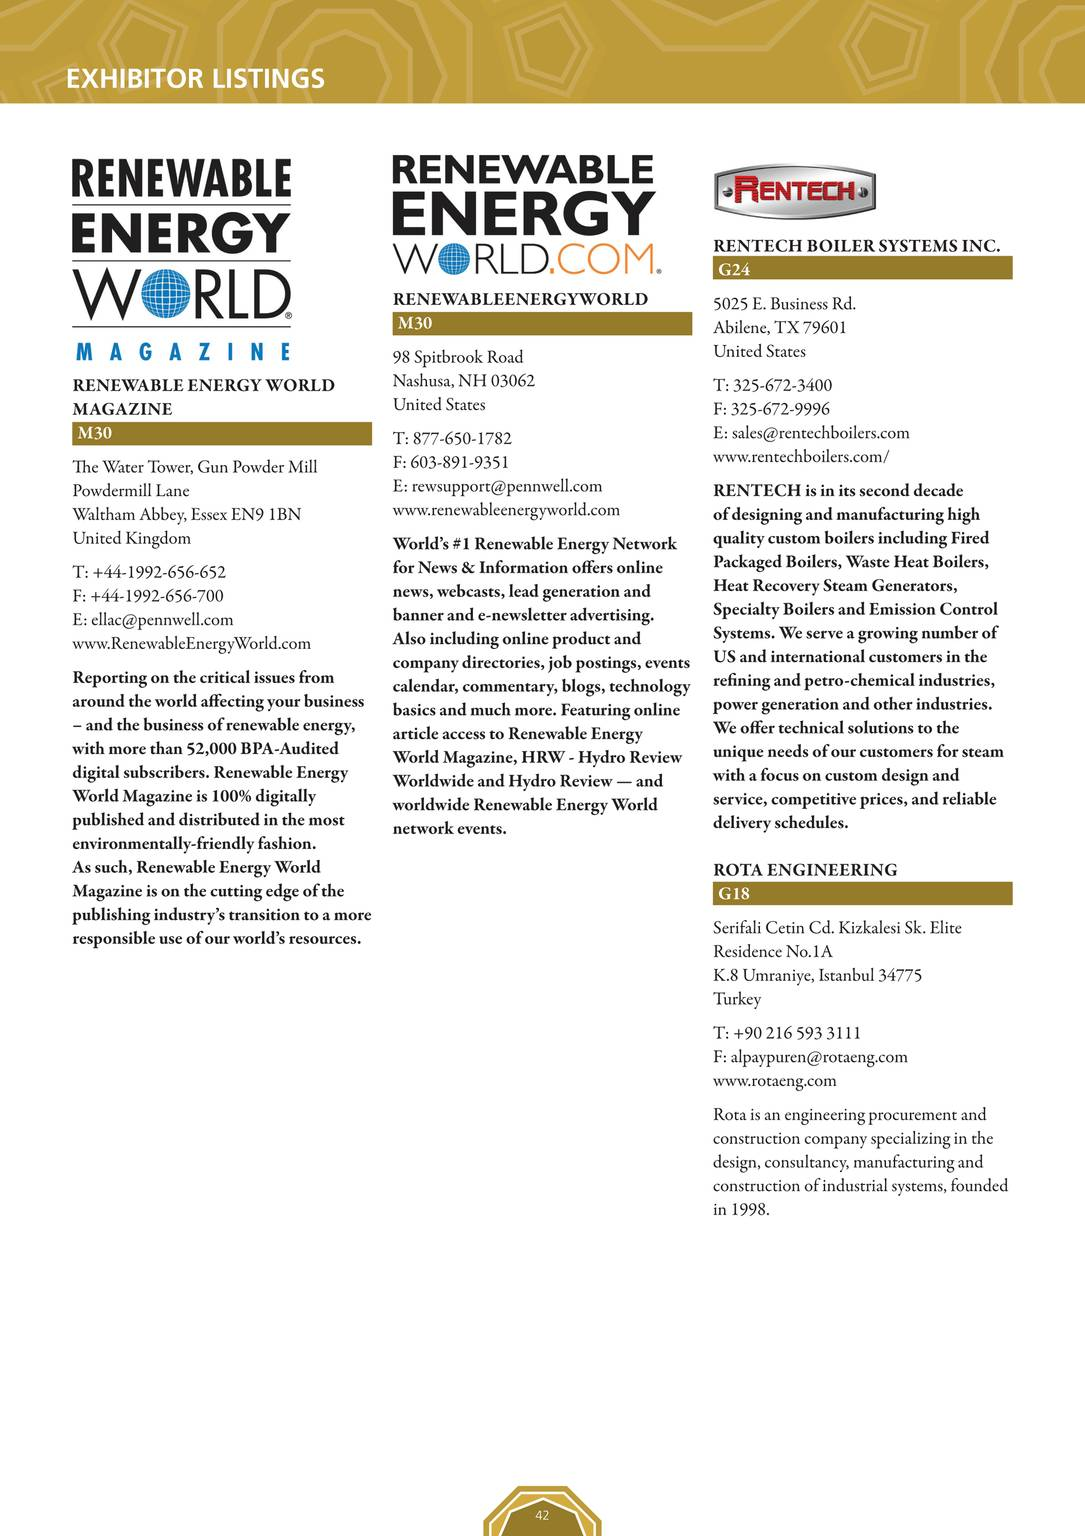 Pennwell Supplements 2015 Power Gen Middle East Event Guide Page 43